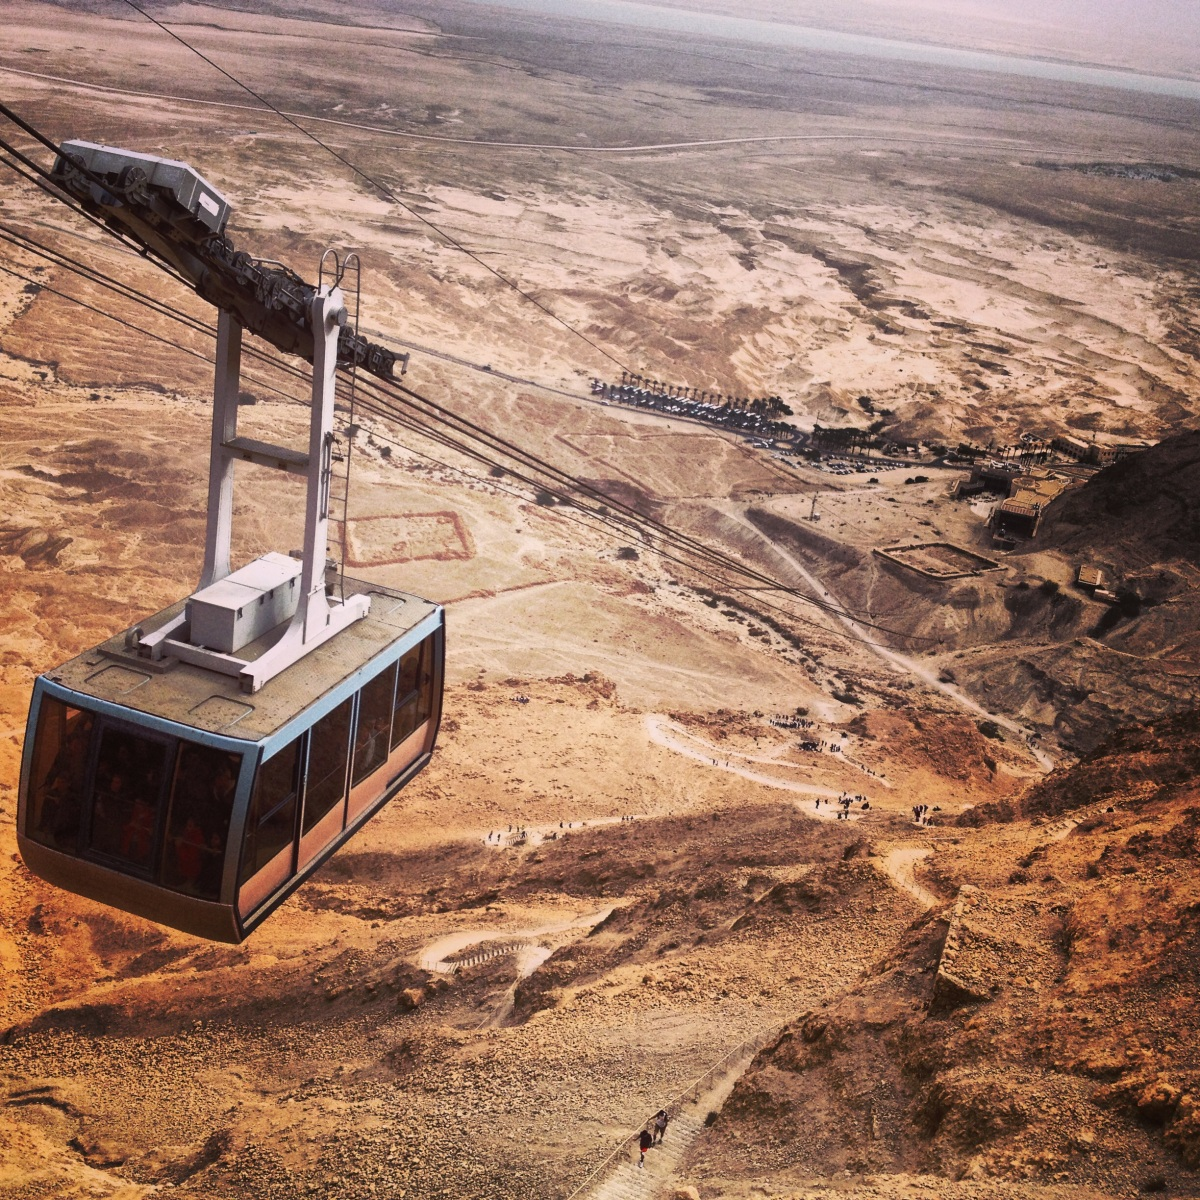 Destination: Masada, Israel